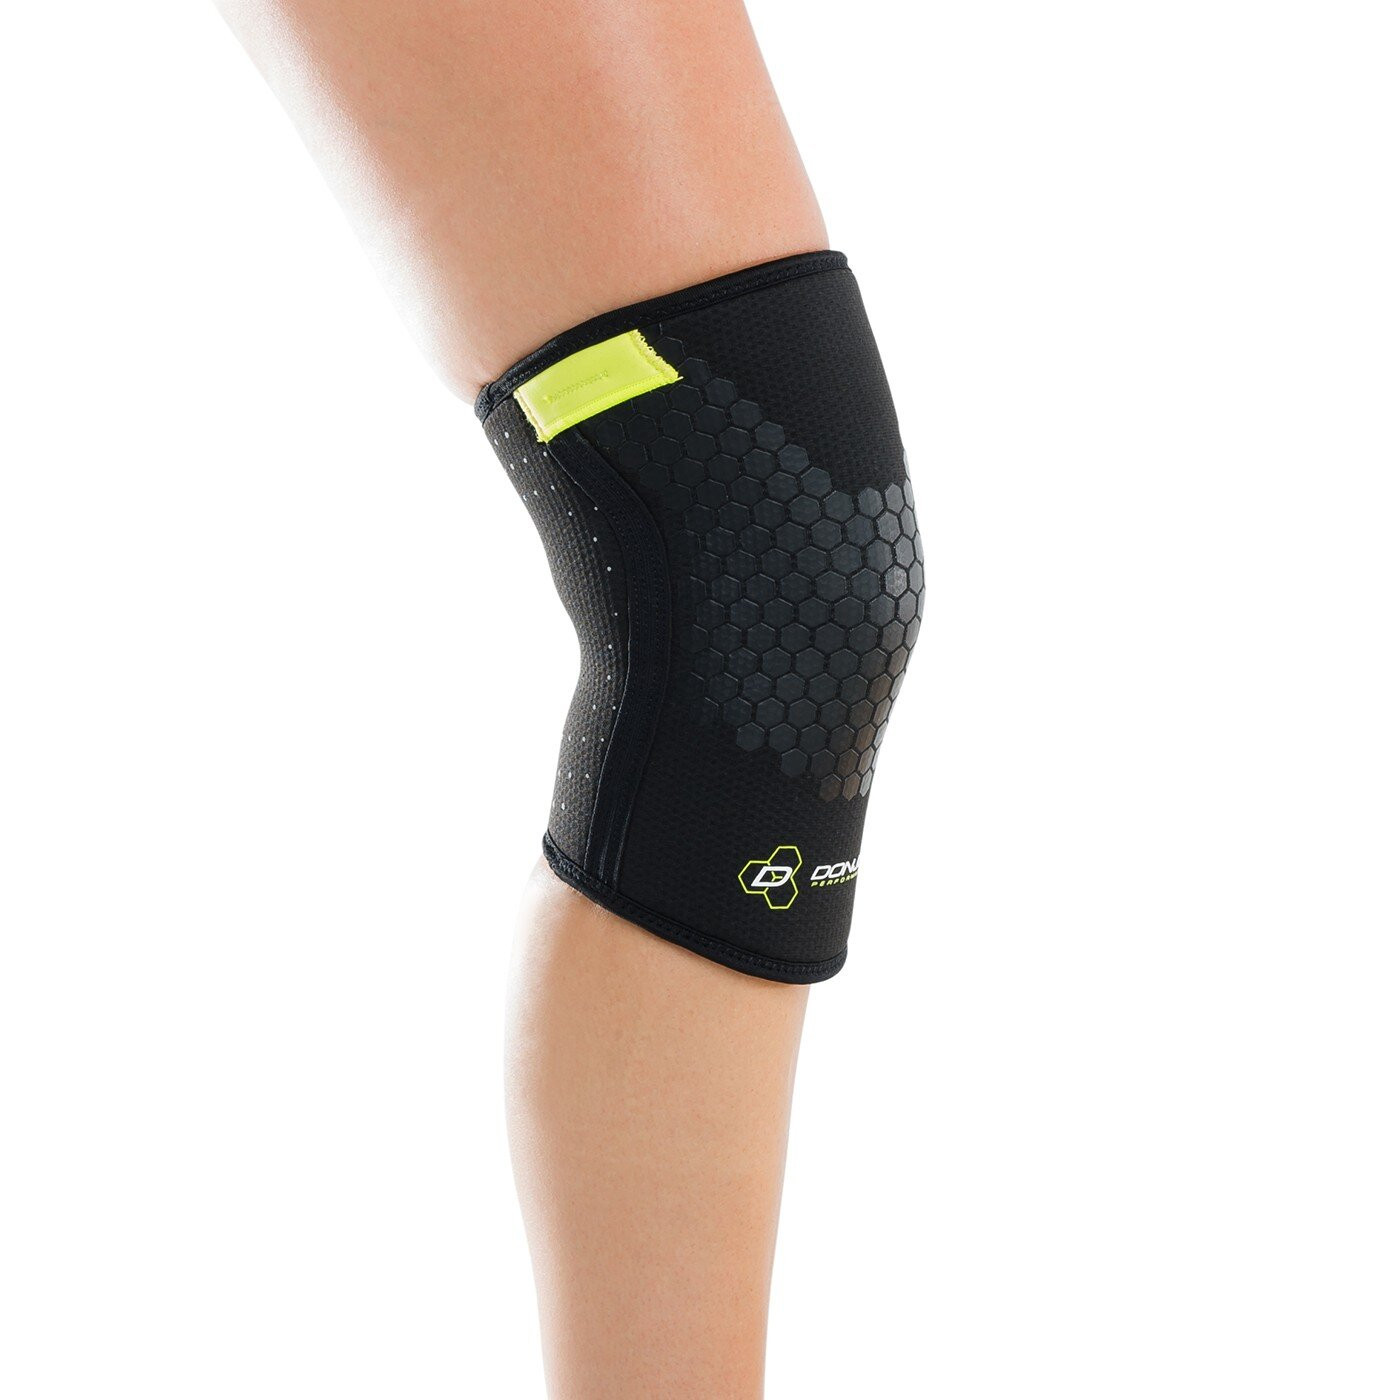 Anaform Power Knee Sleeves (1 Pair)